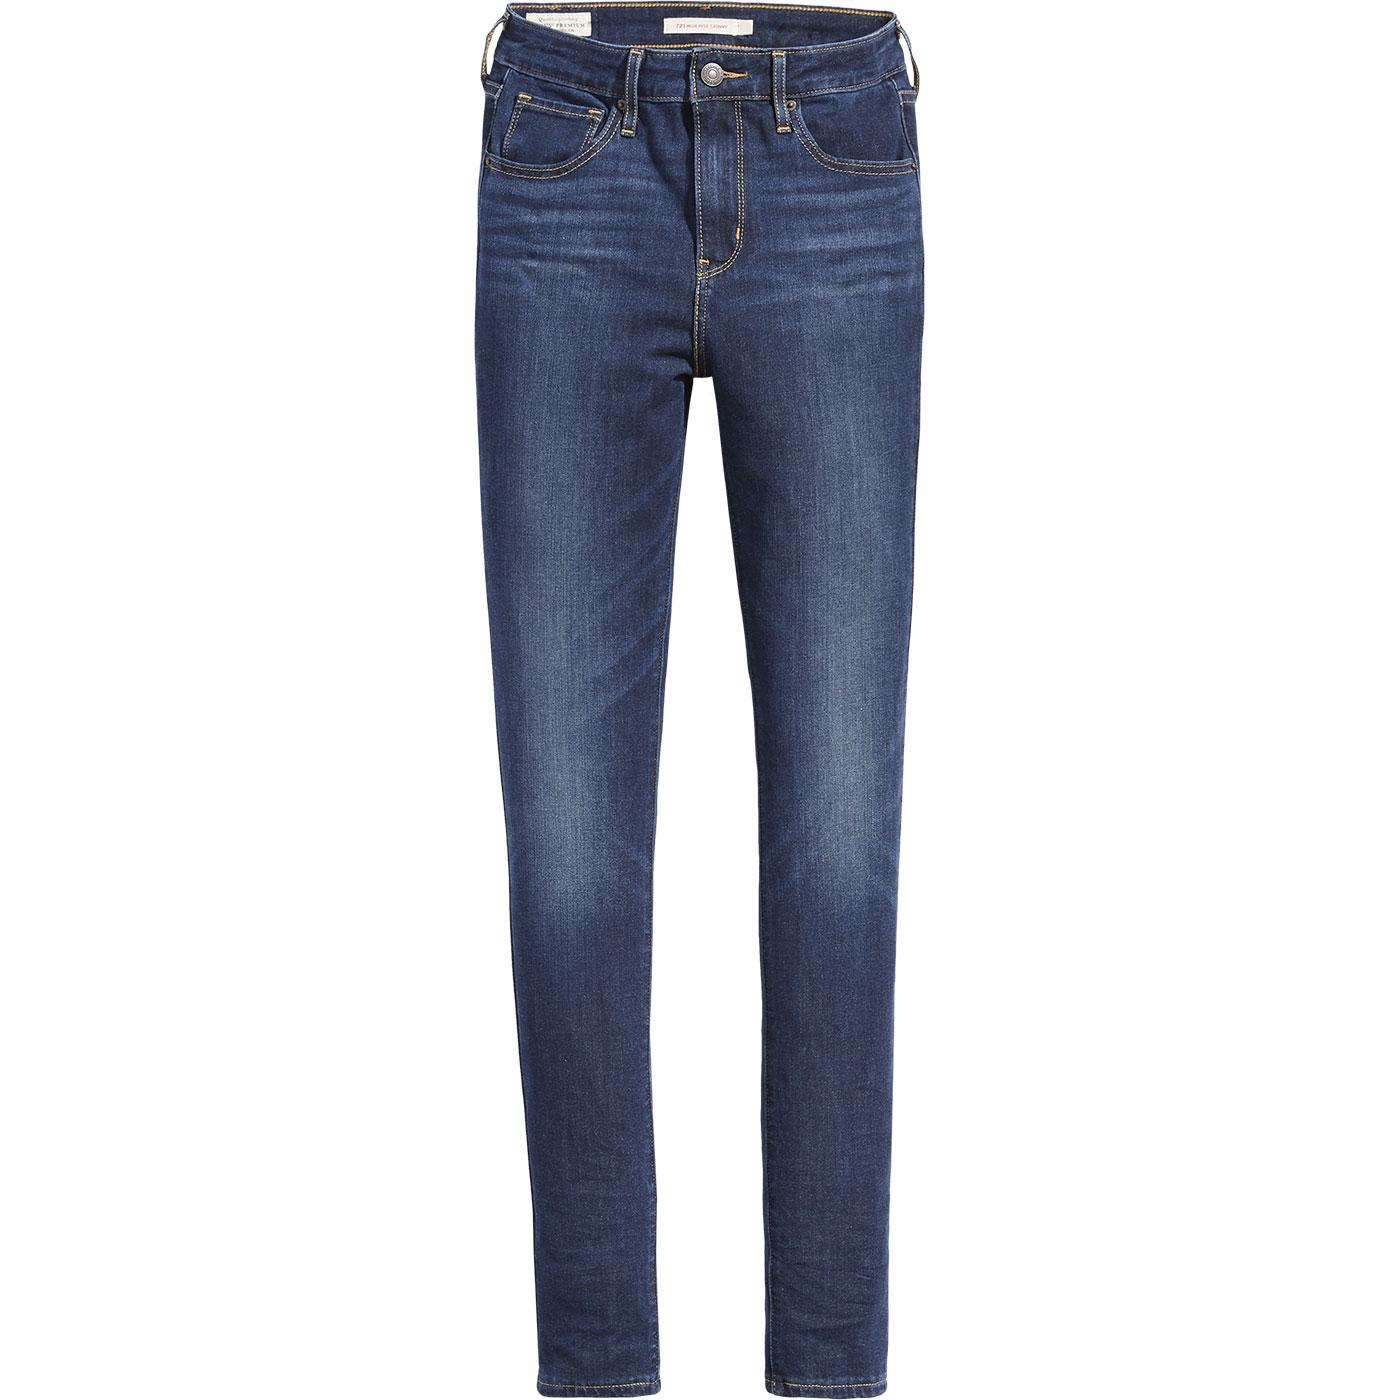 LEVI'S 721 High Rise Skinny Jeans - Smooth It Out